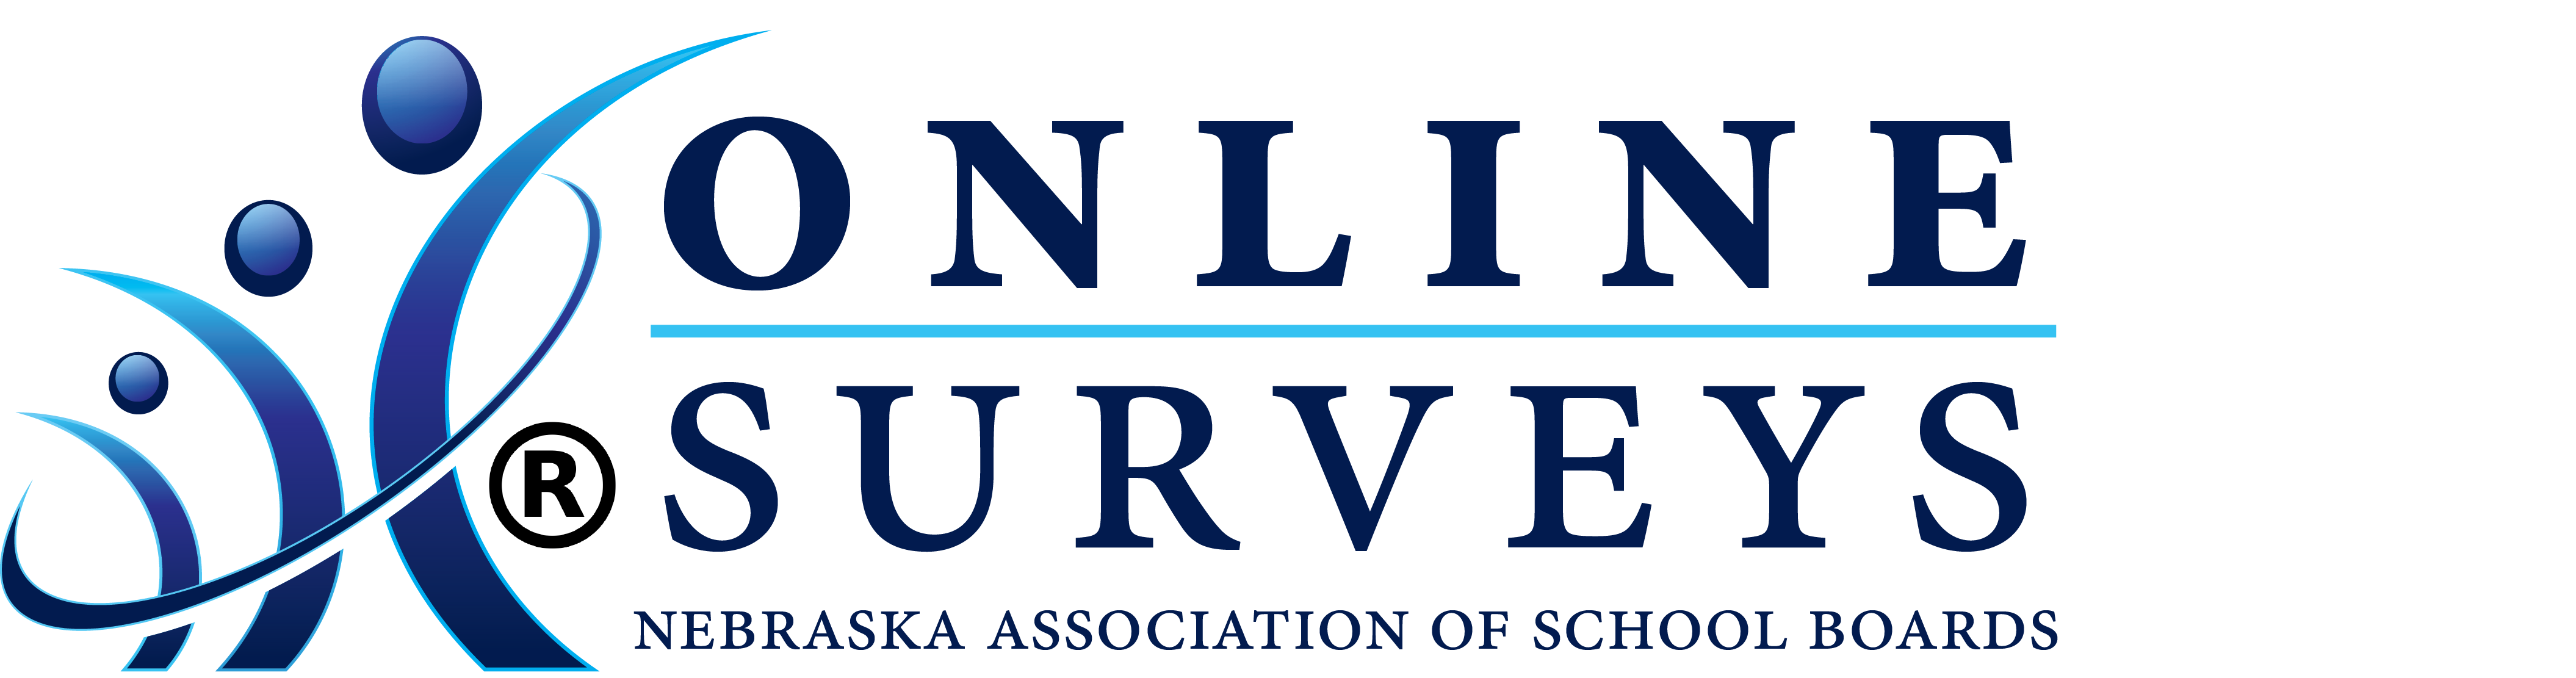 onlinesurveys2020